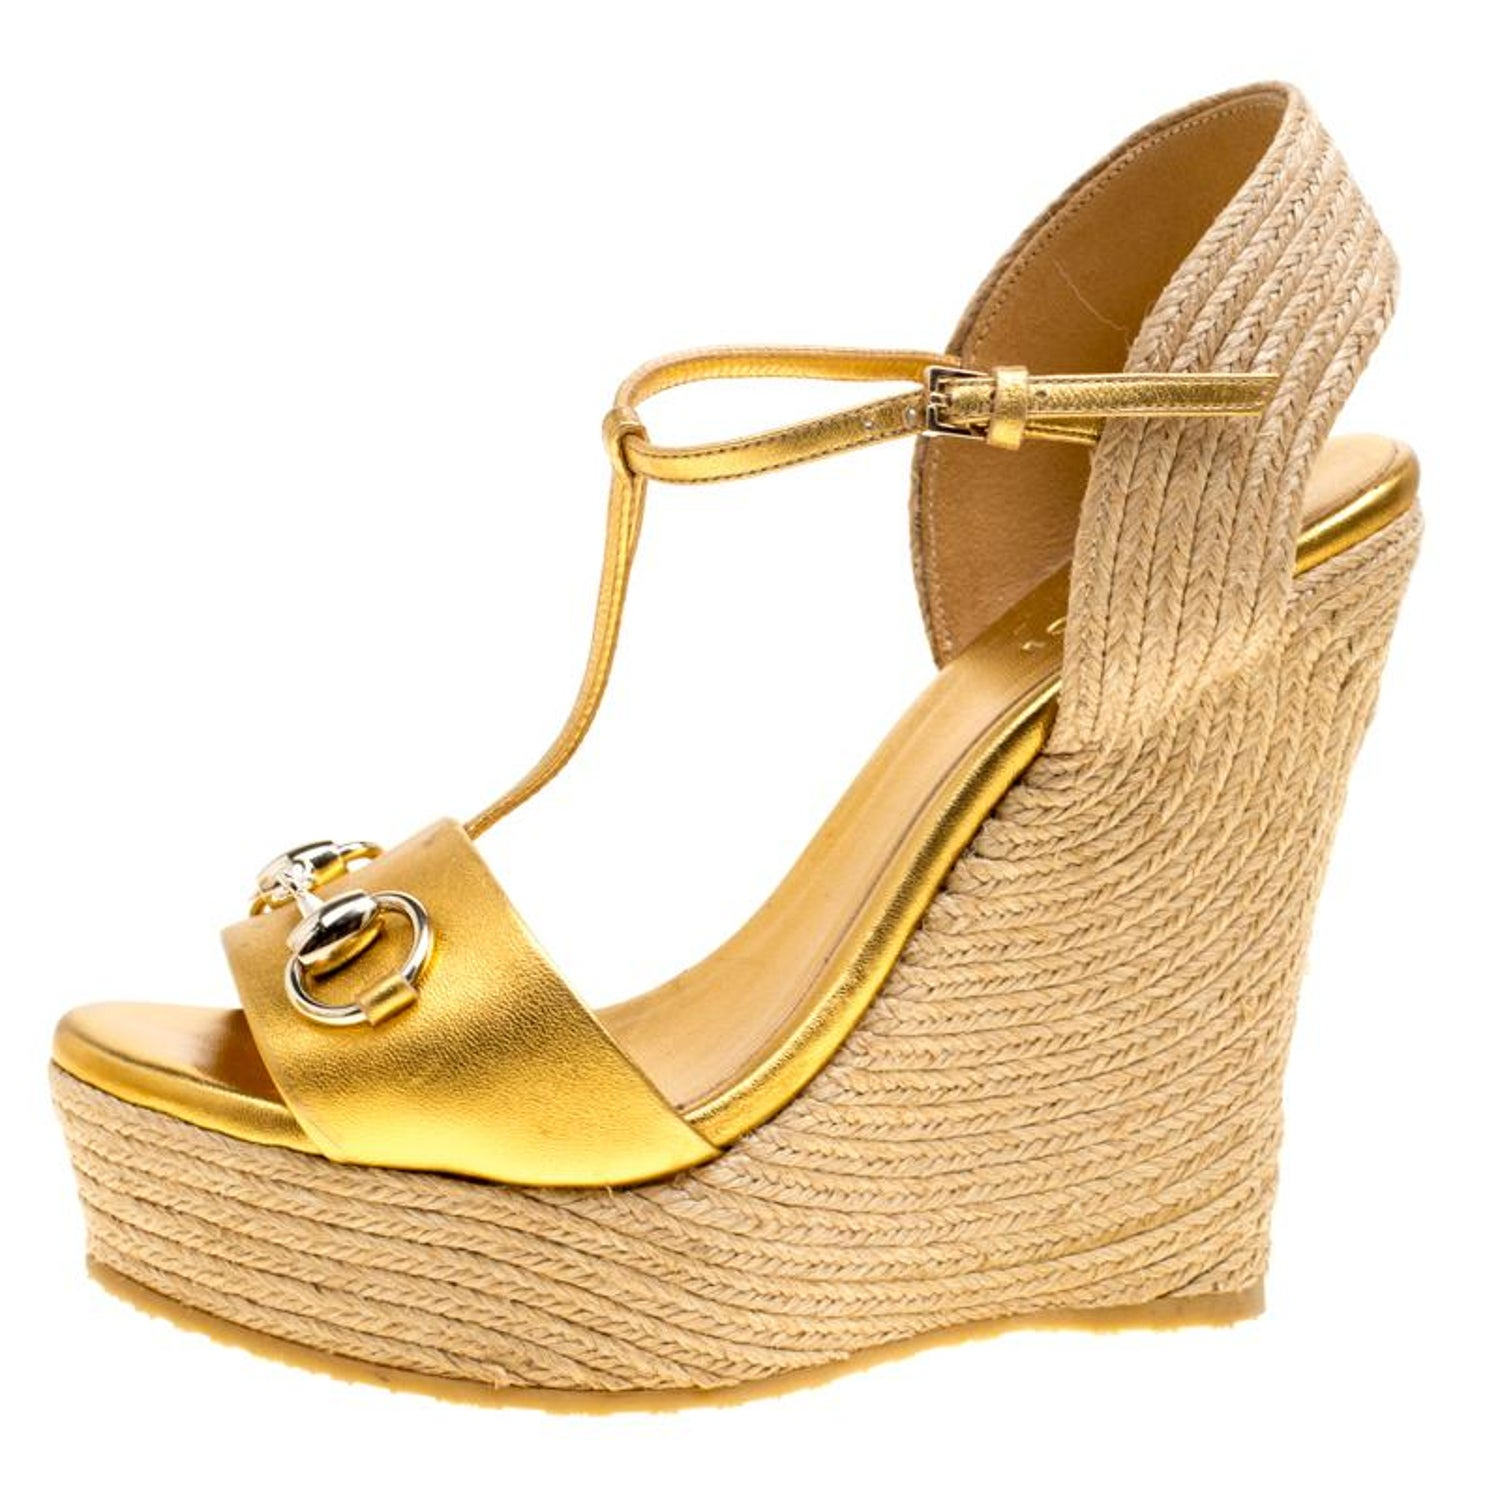 653d3a96bc2 Gucci Gold Metallic Leather Horsebit T-Strap Espadrille Wedge Sandals Size  36.5 at 1stdibs